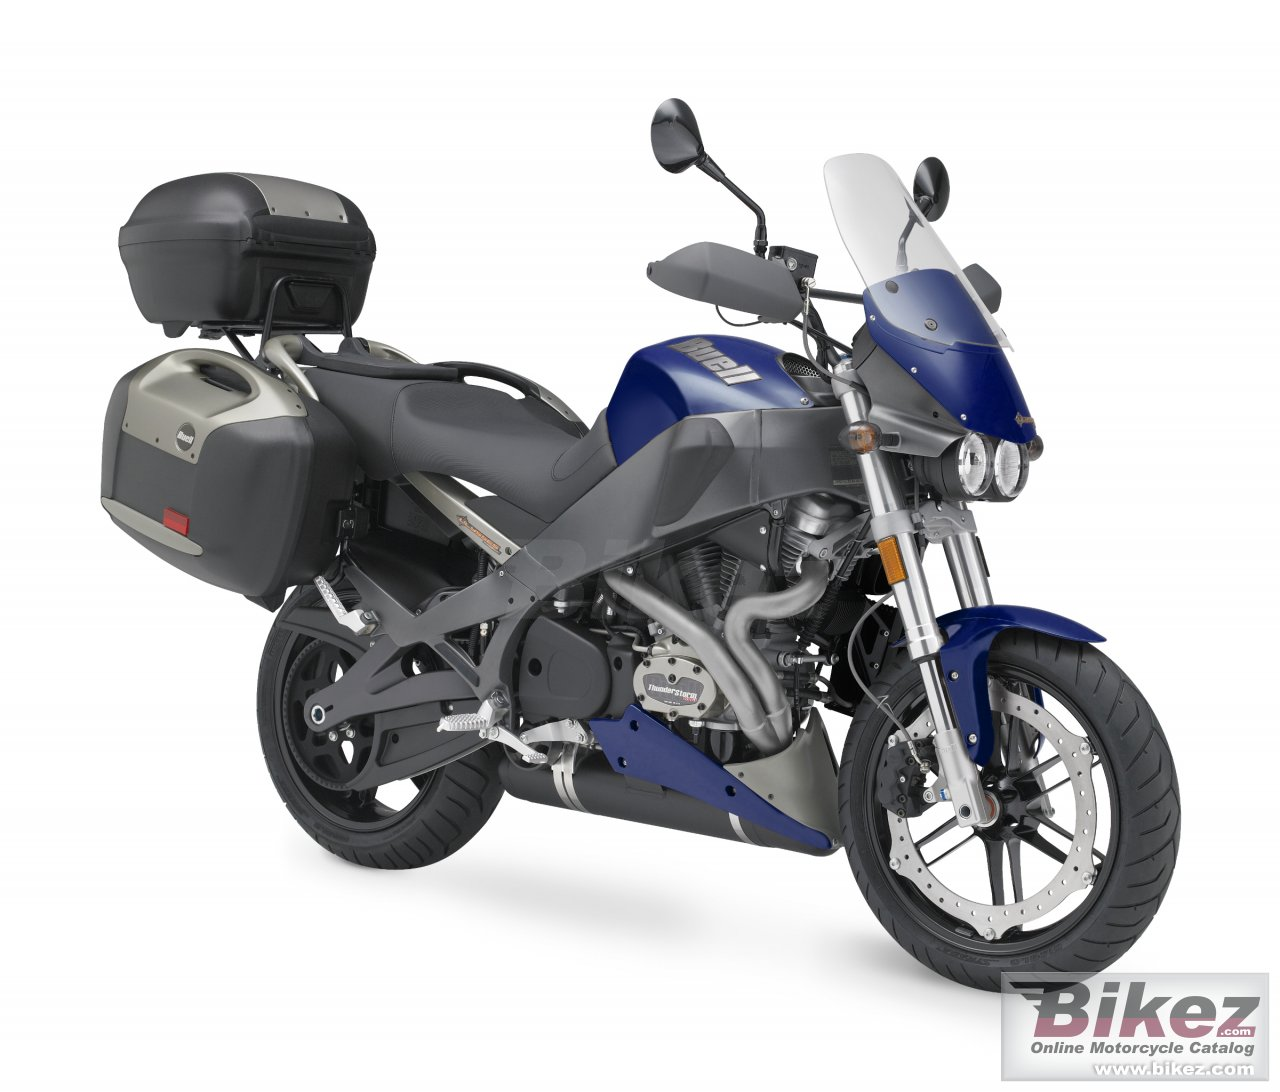 Big Buell ulysses xb12 xt picture and wallpaper from Bikez.com